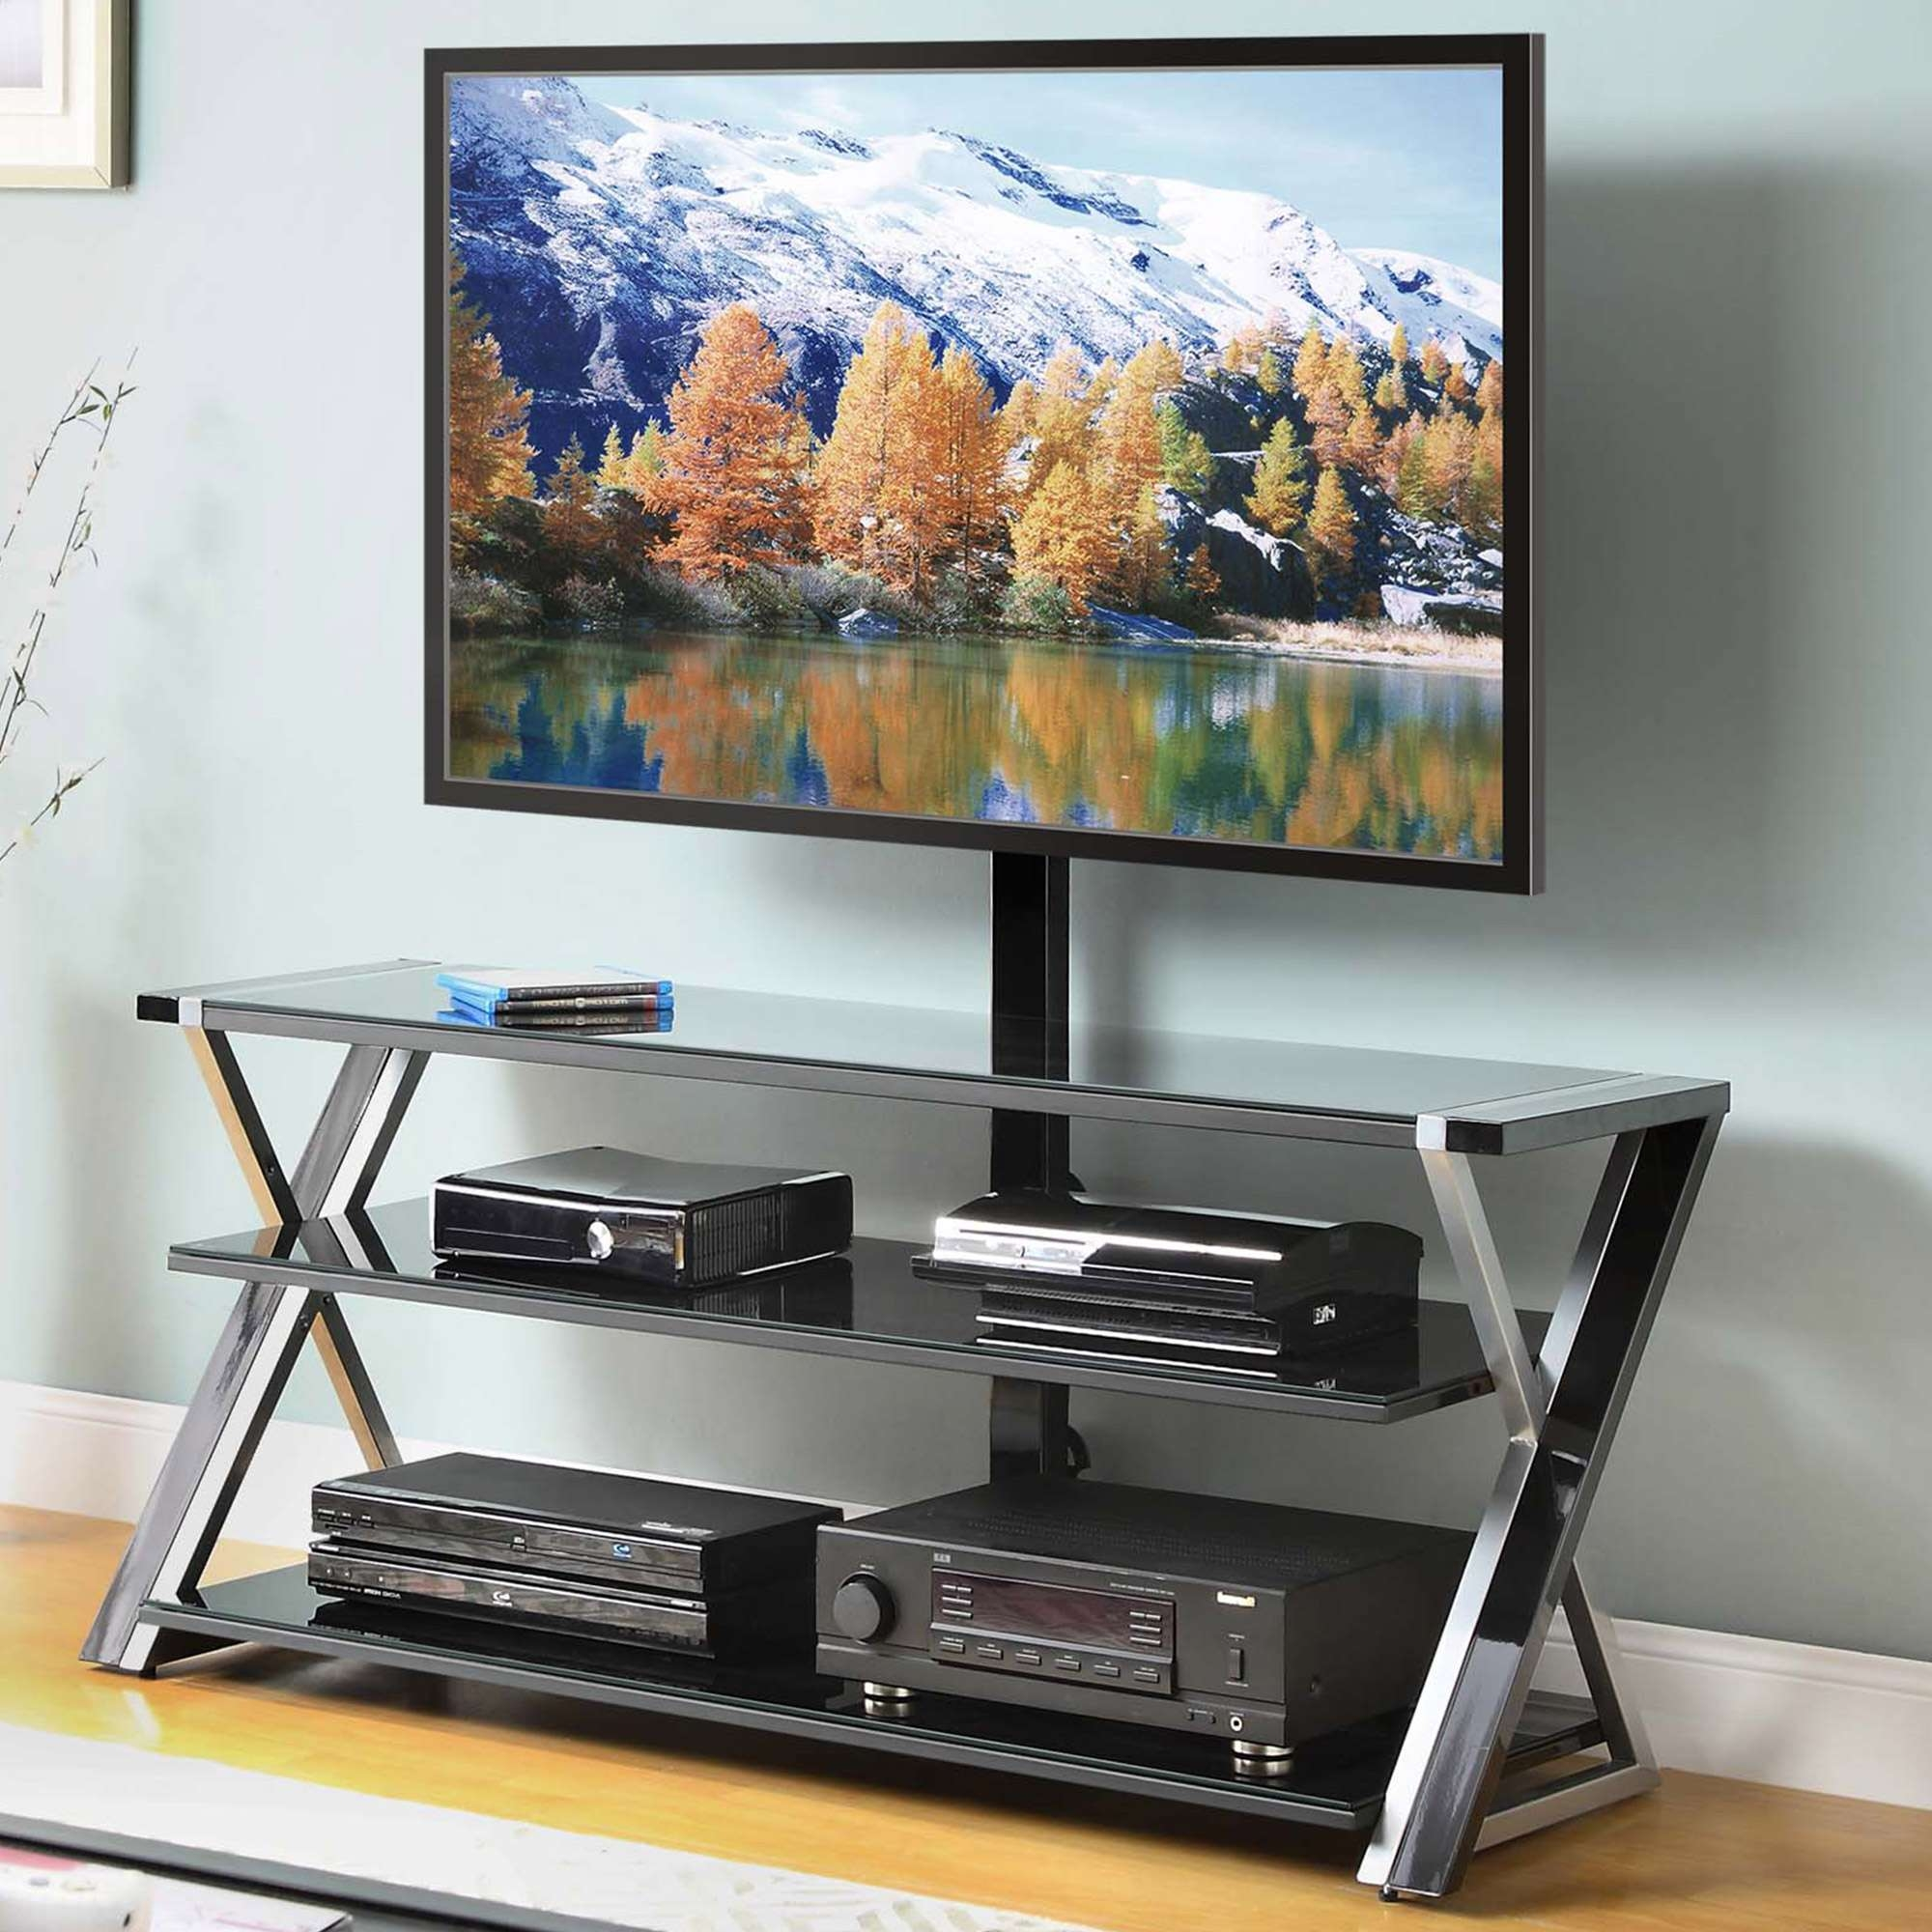 Tv : Cordoba Tv Stands Attractive Cordoba Tv Stand With Mount With Cordoba Tv Stands (View 8 of 15)